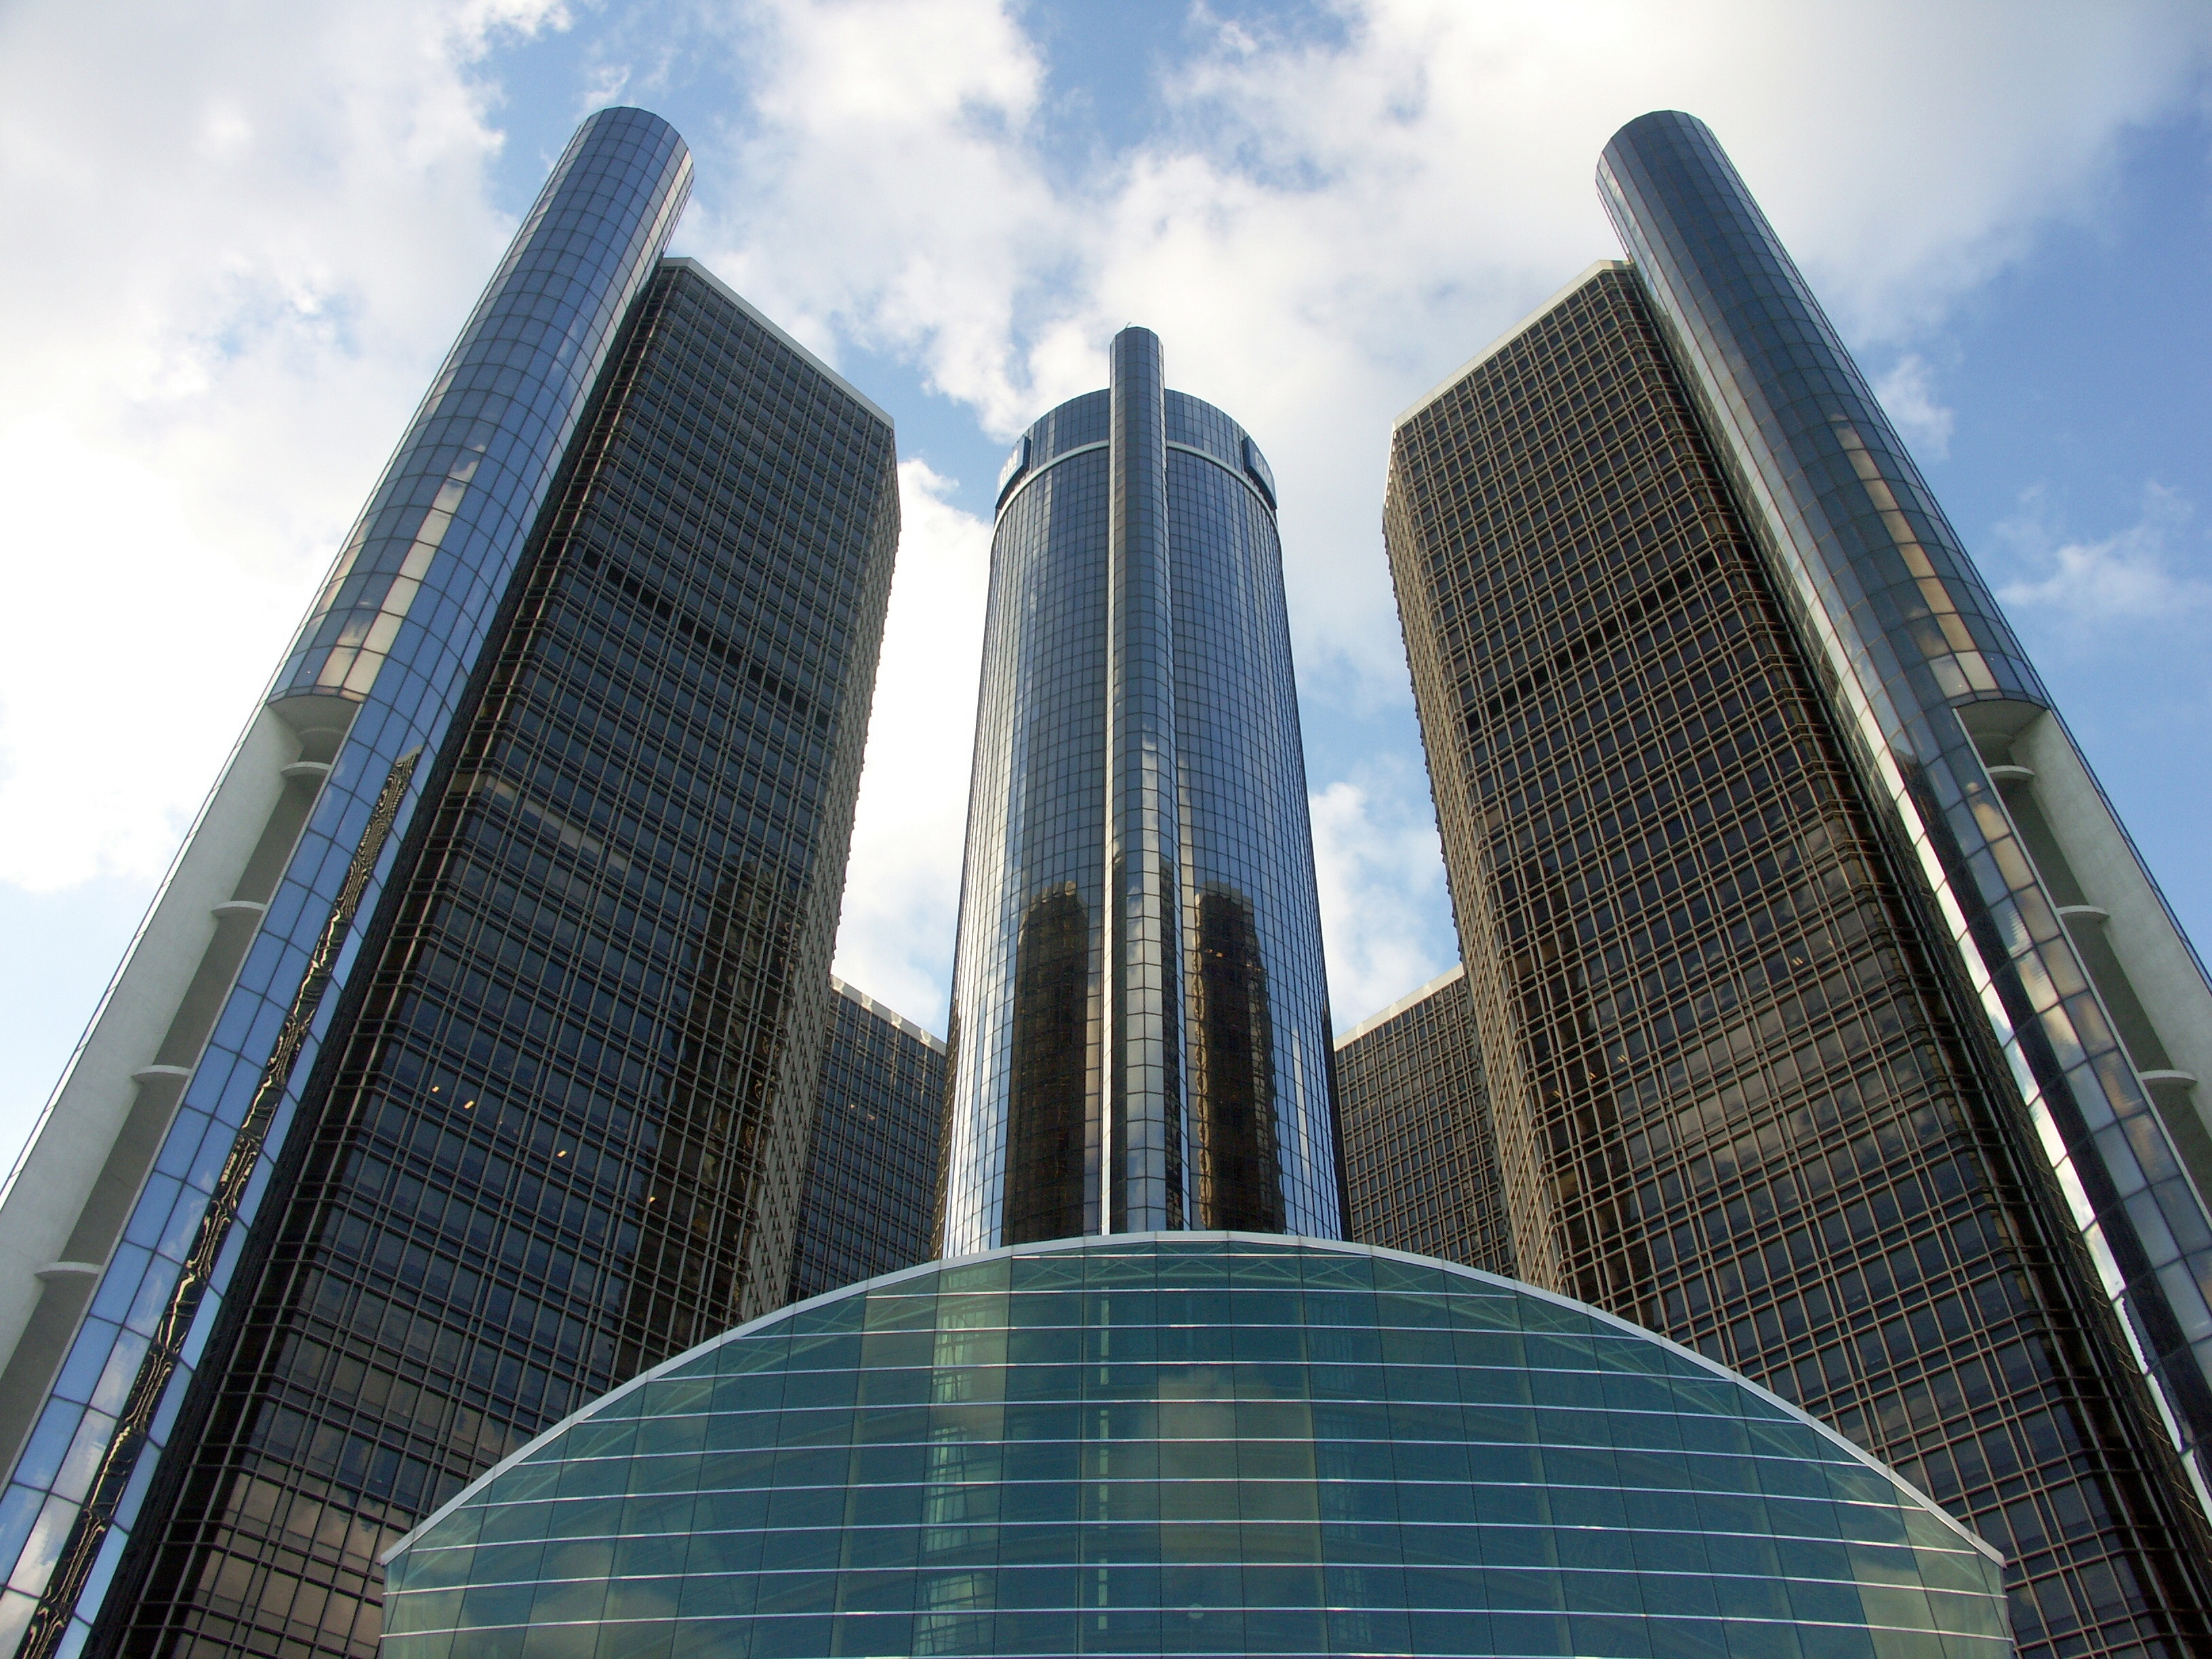 general motors financial analysis General motors corporation case one – internal analysis keith  engaged in financial and  on the attached comprehensive analysis of general motors.